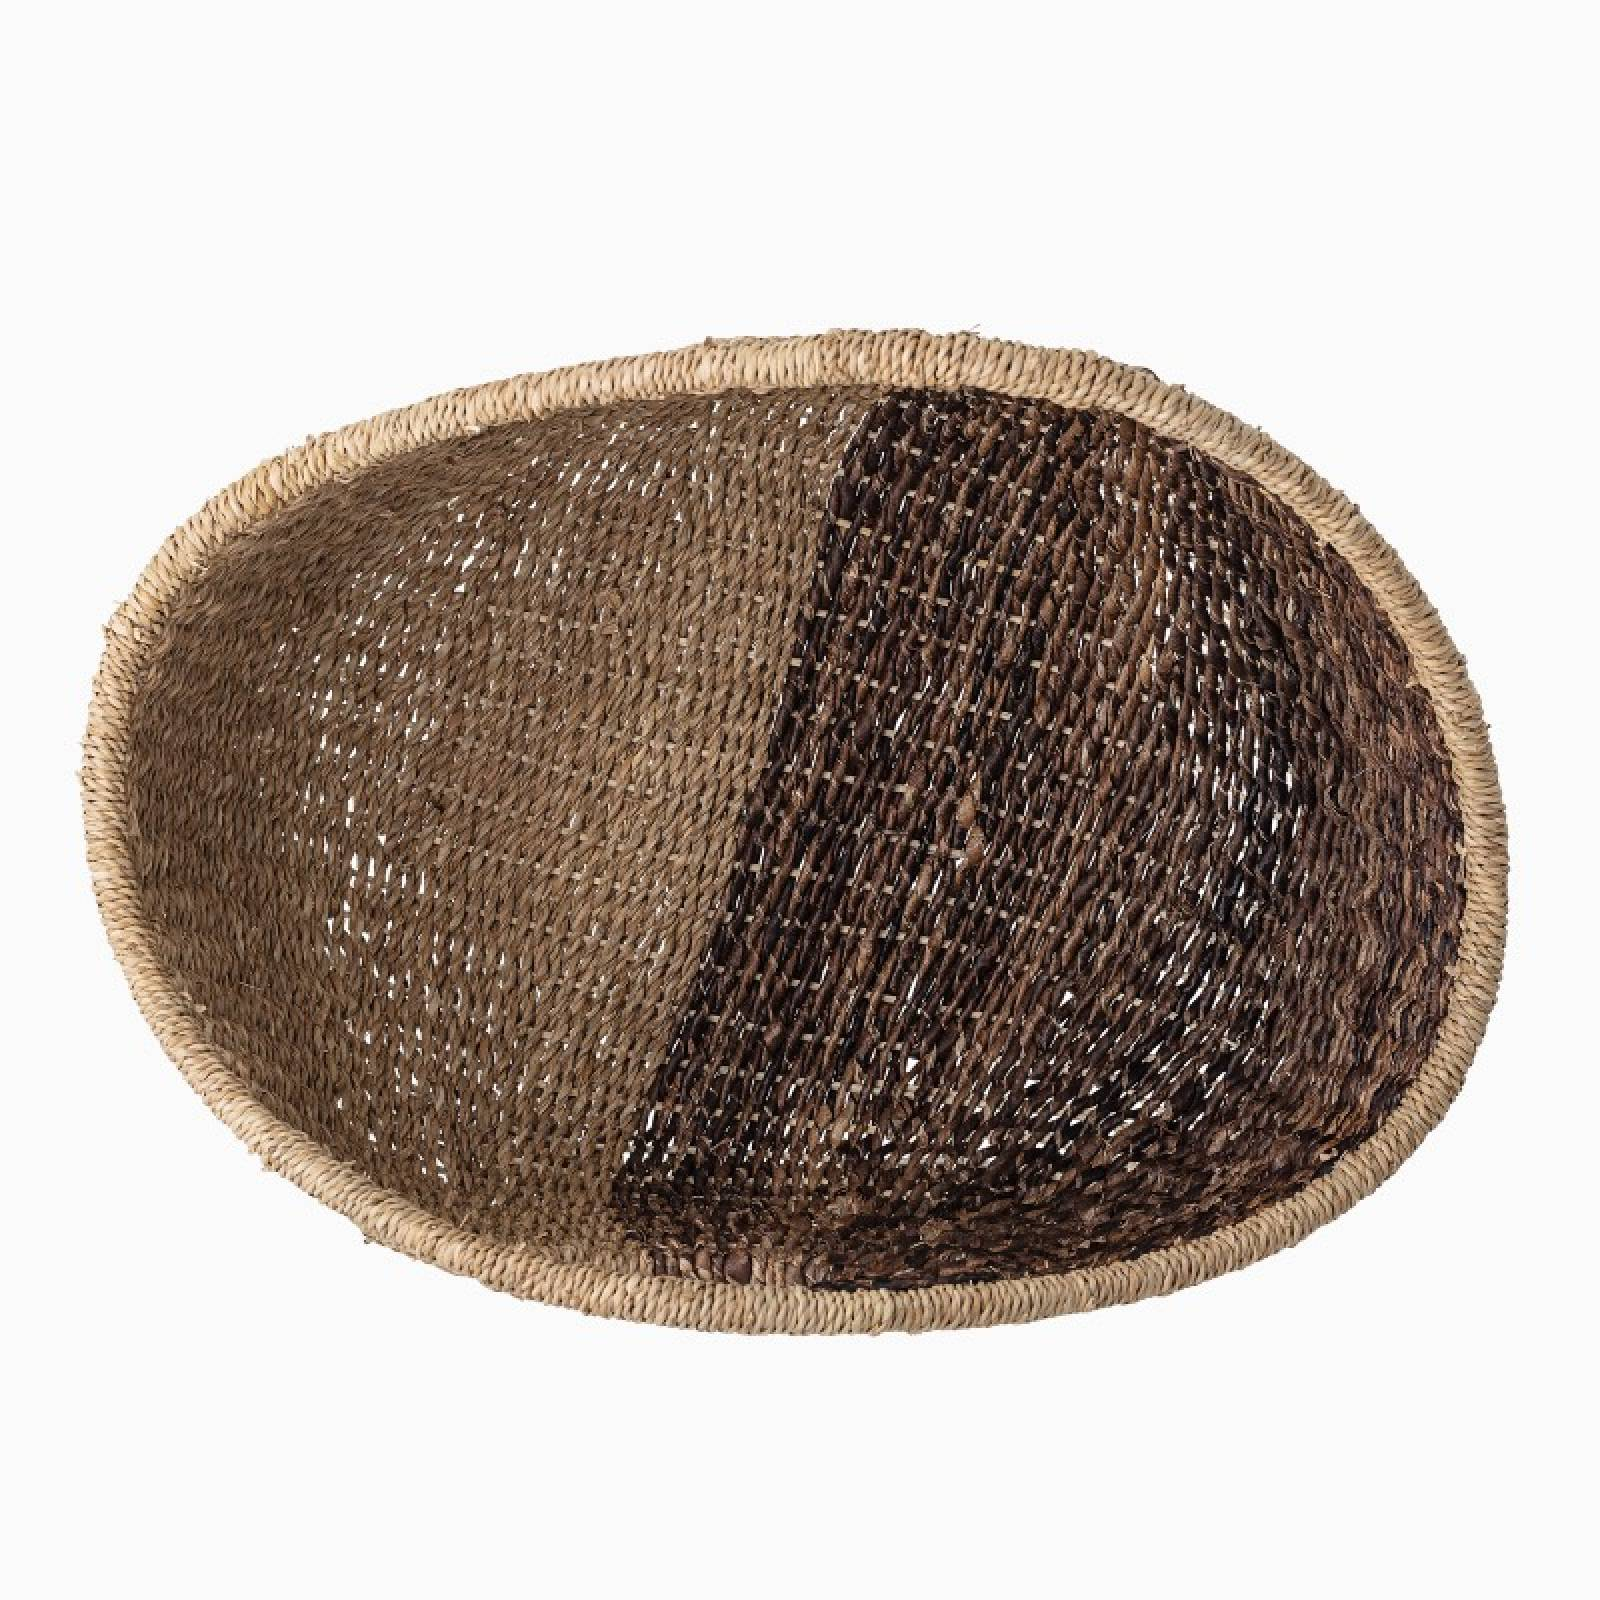 Bankuan Grass Curved Storage Basket With Handles thumbnails